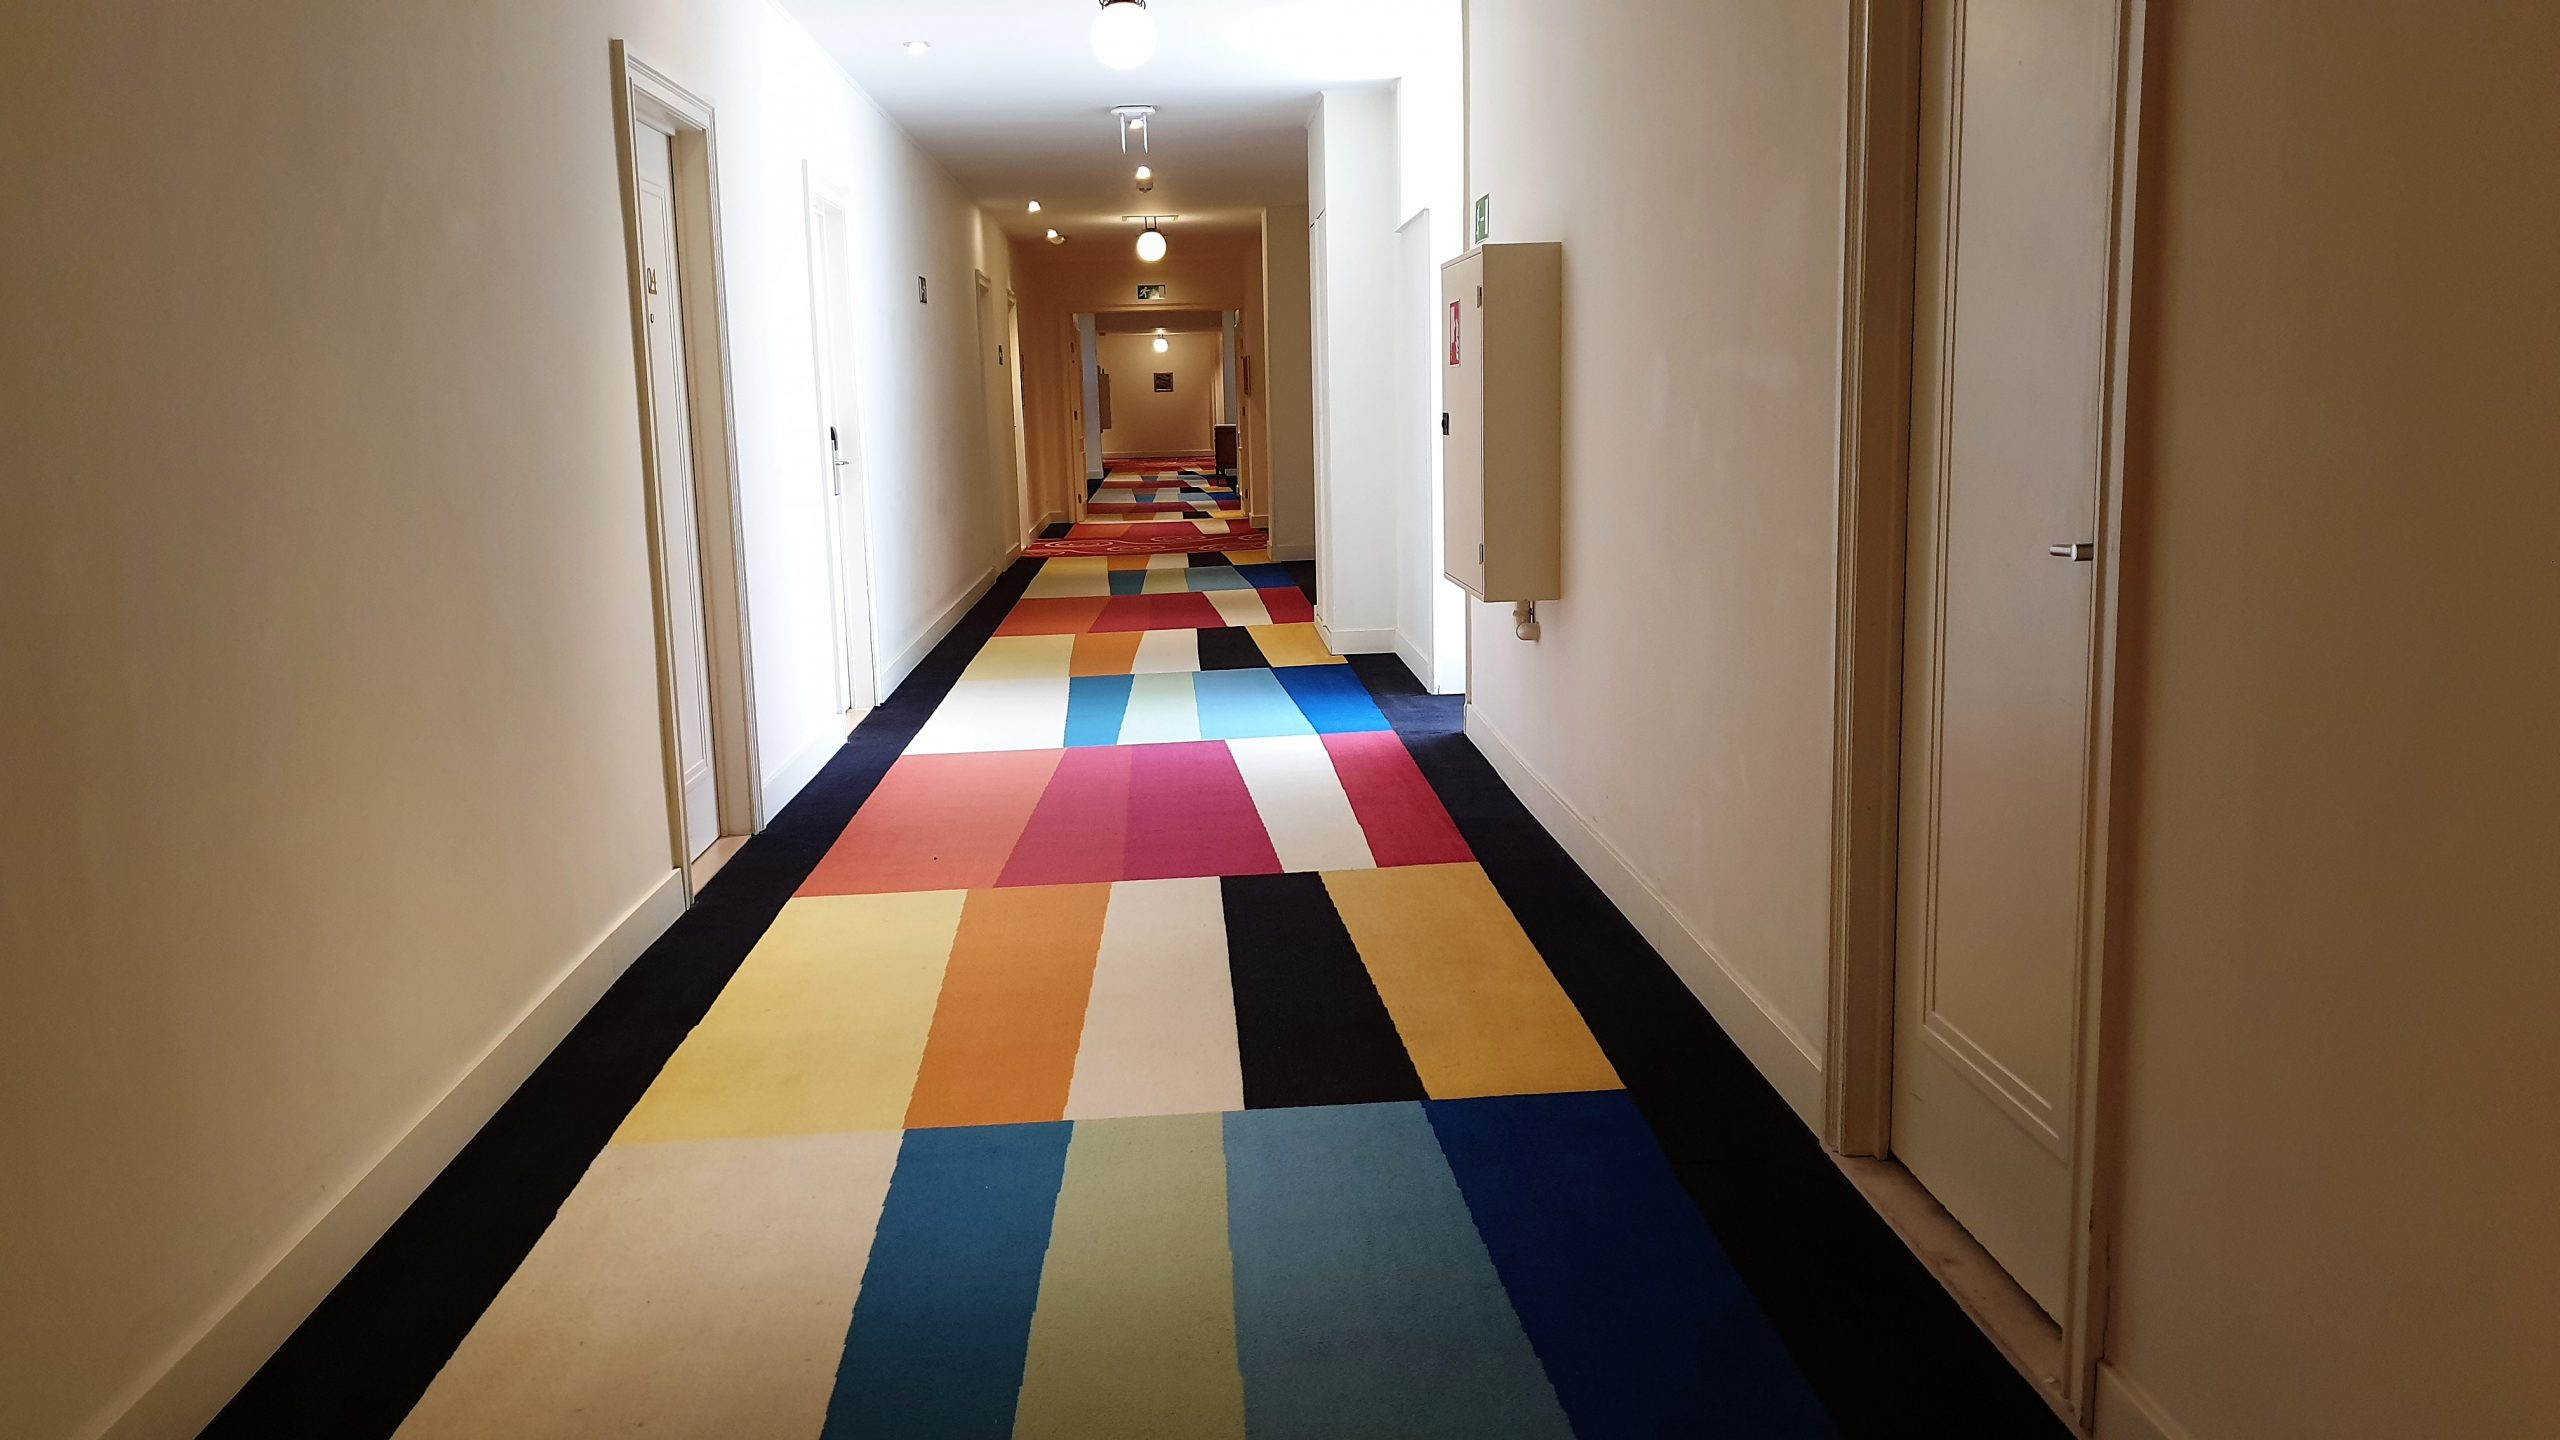 Crowne Plaza Le Palace Brussels, photo by placescases.com